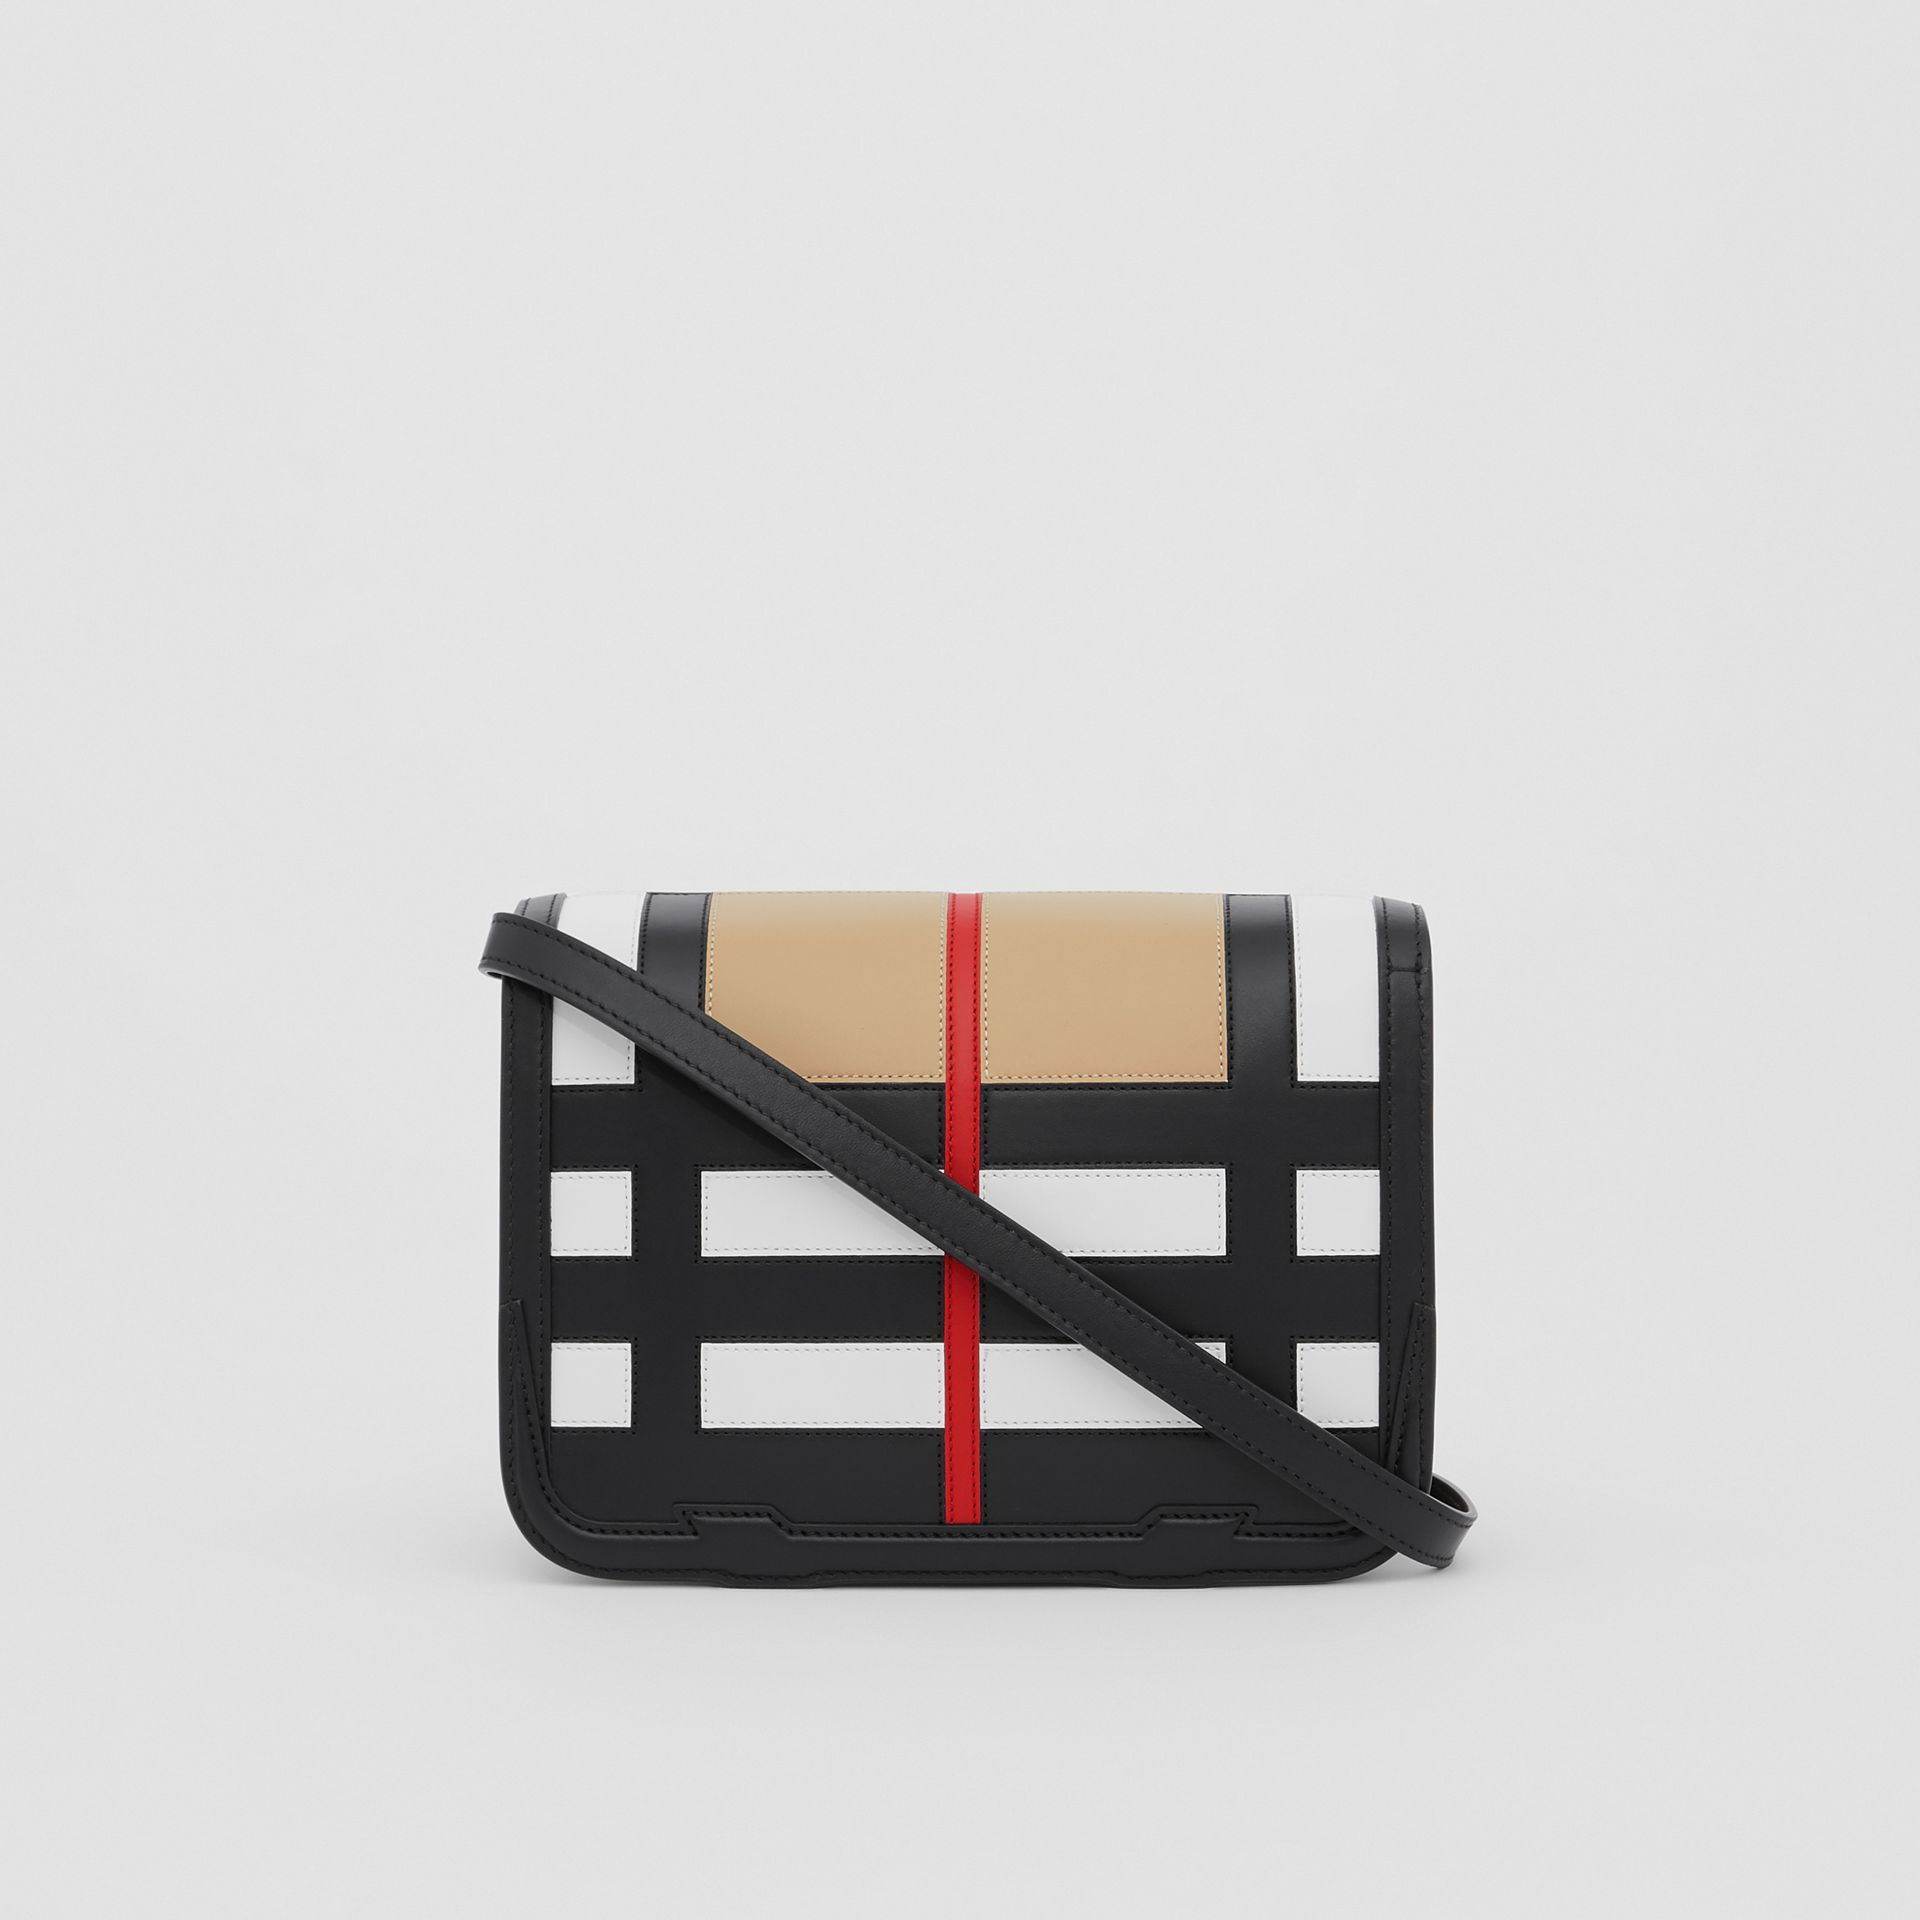 Small Check Appliqué Leather TB Bag in Black - Women | Burberry - gallery image 5